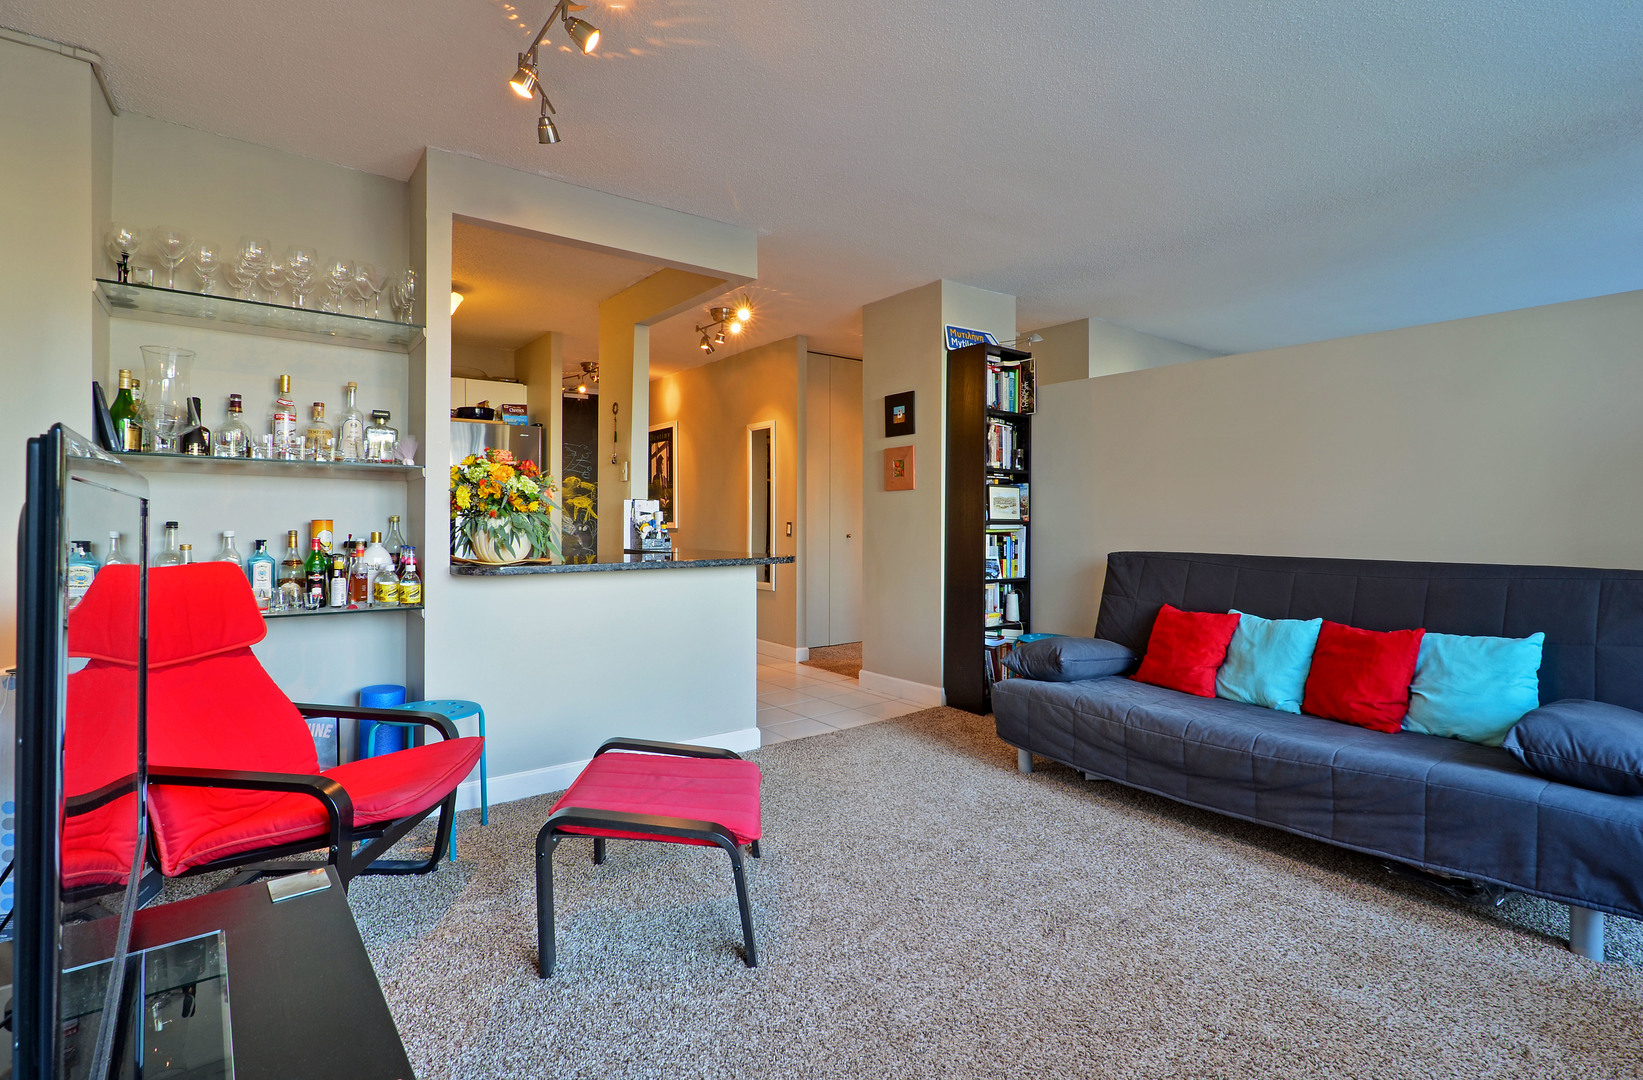 405 NORTH WABASH AVENUE #3106, CHICAGO, IL 60611  Photo 4